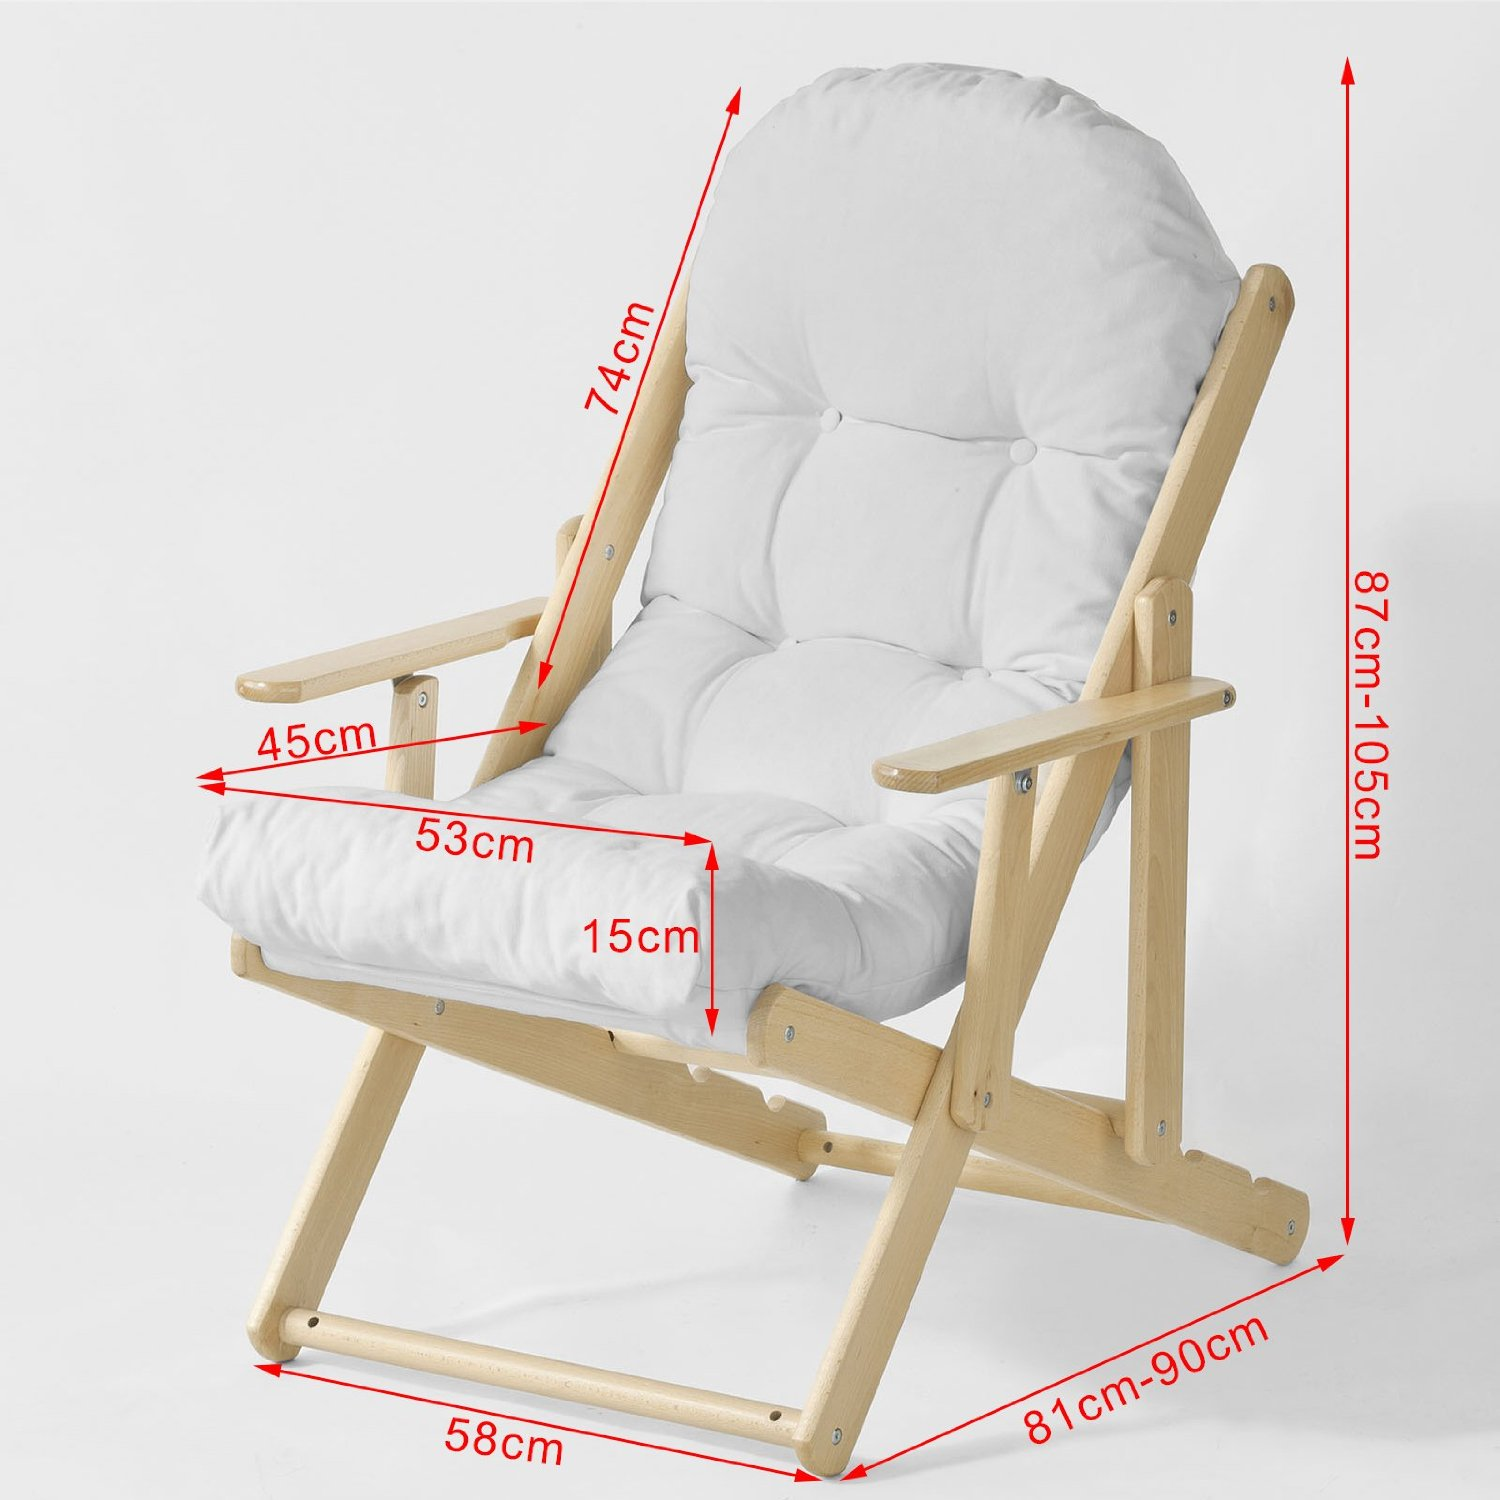 Lounge Chair Measurements Folding Lounge Chair Beach Chair Prd Furntiure